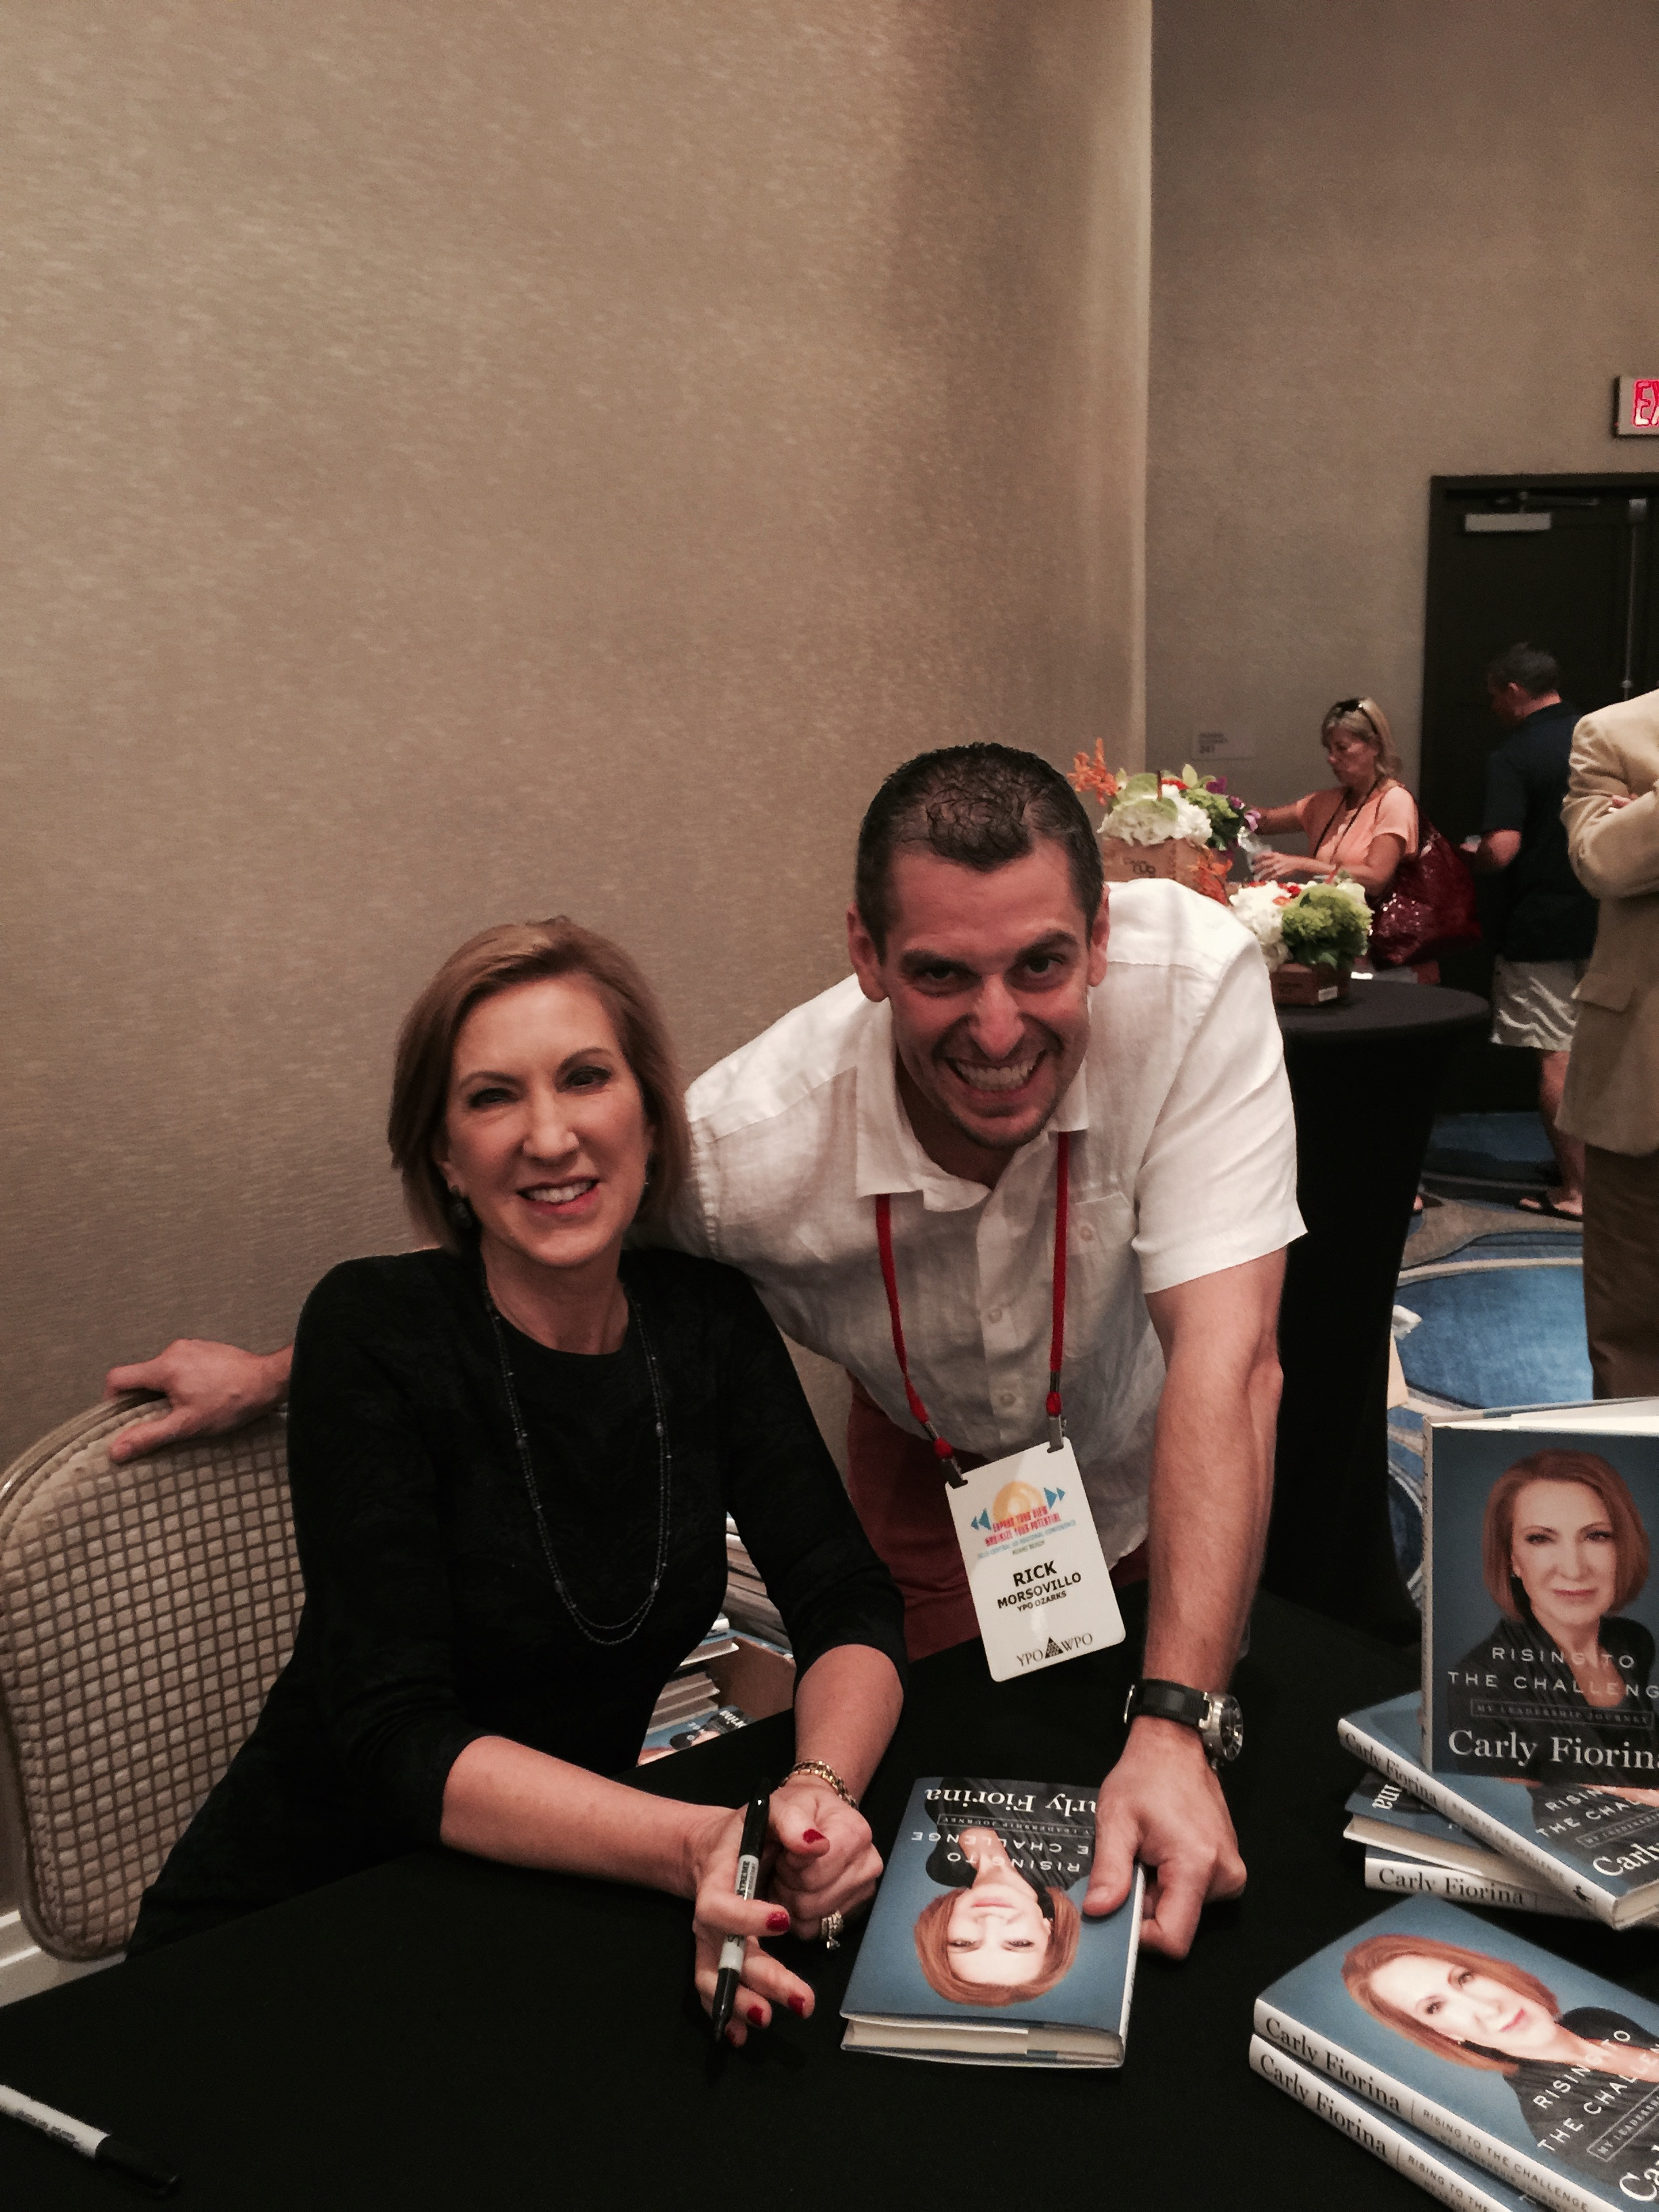 Rick Mosovillo with Carly Fiorina